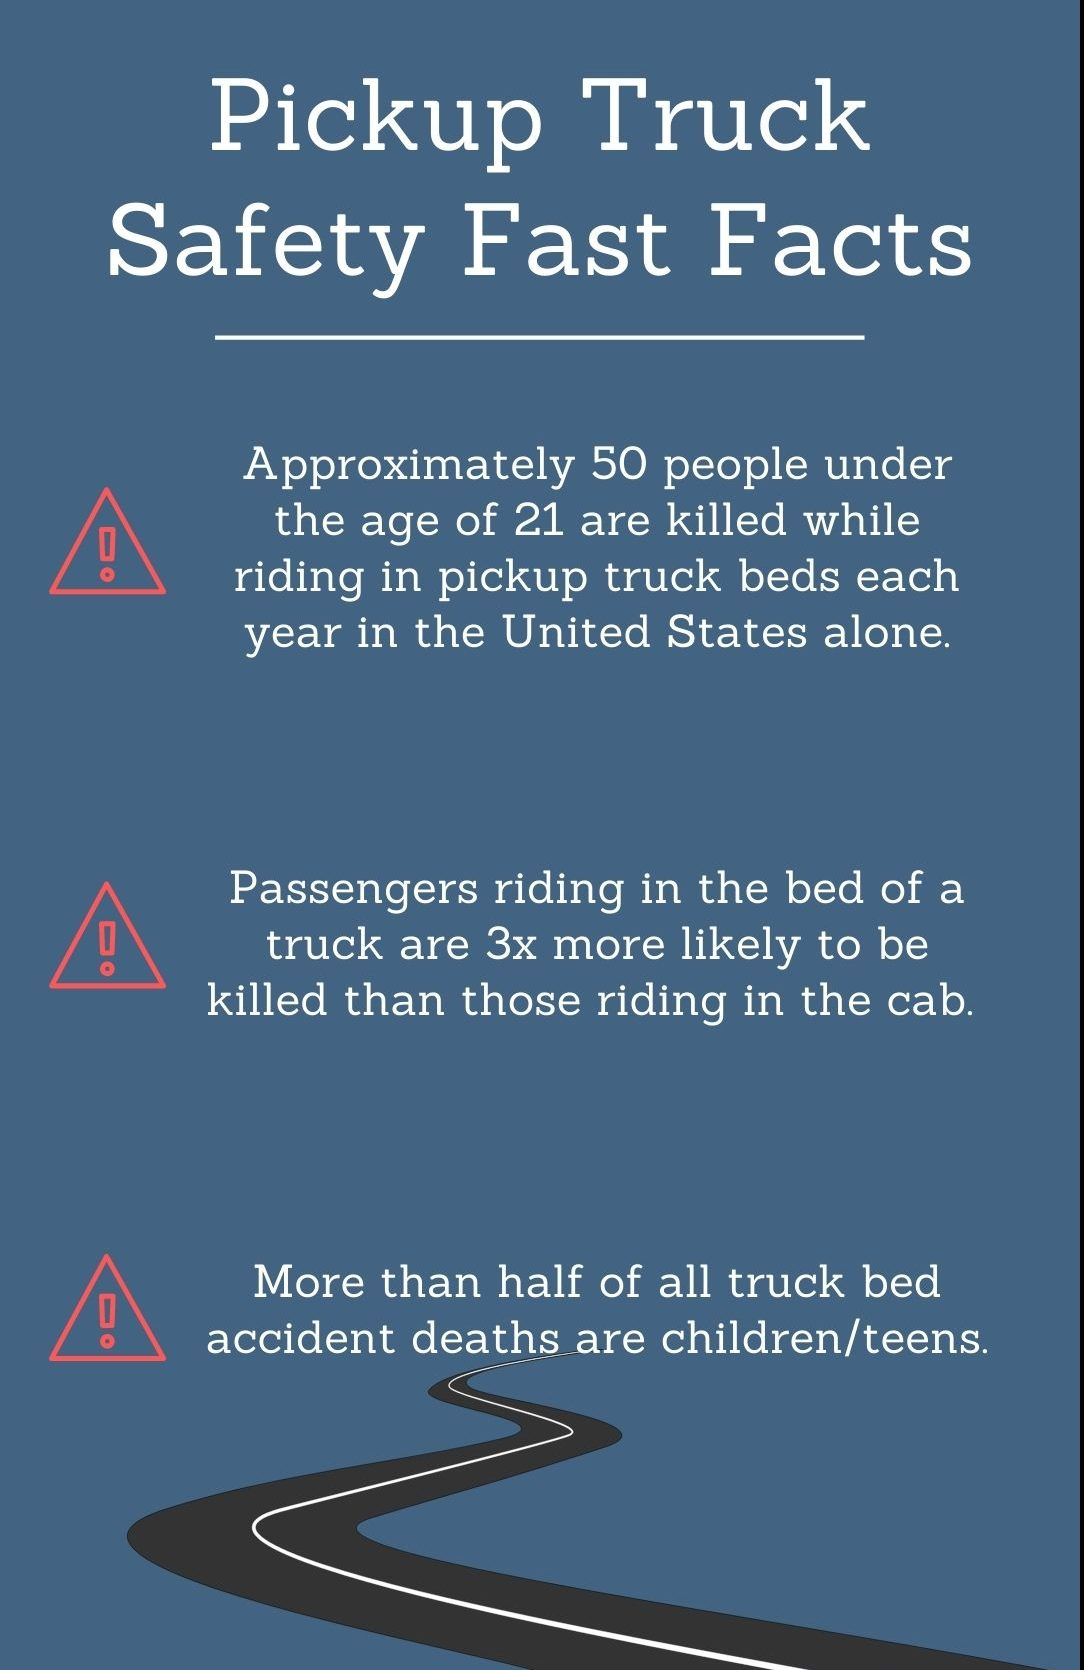 Pickup Truck Safety Fast Facts. Approximately 50 people under the age of 21 are killed while riding in pickup truck beds each year in the United States alone. Passengers riding in the bed of a truck are 3x more likely to be killed than those riding in the cab.  More than half of all truck bed accident deaths are children/teens.